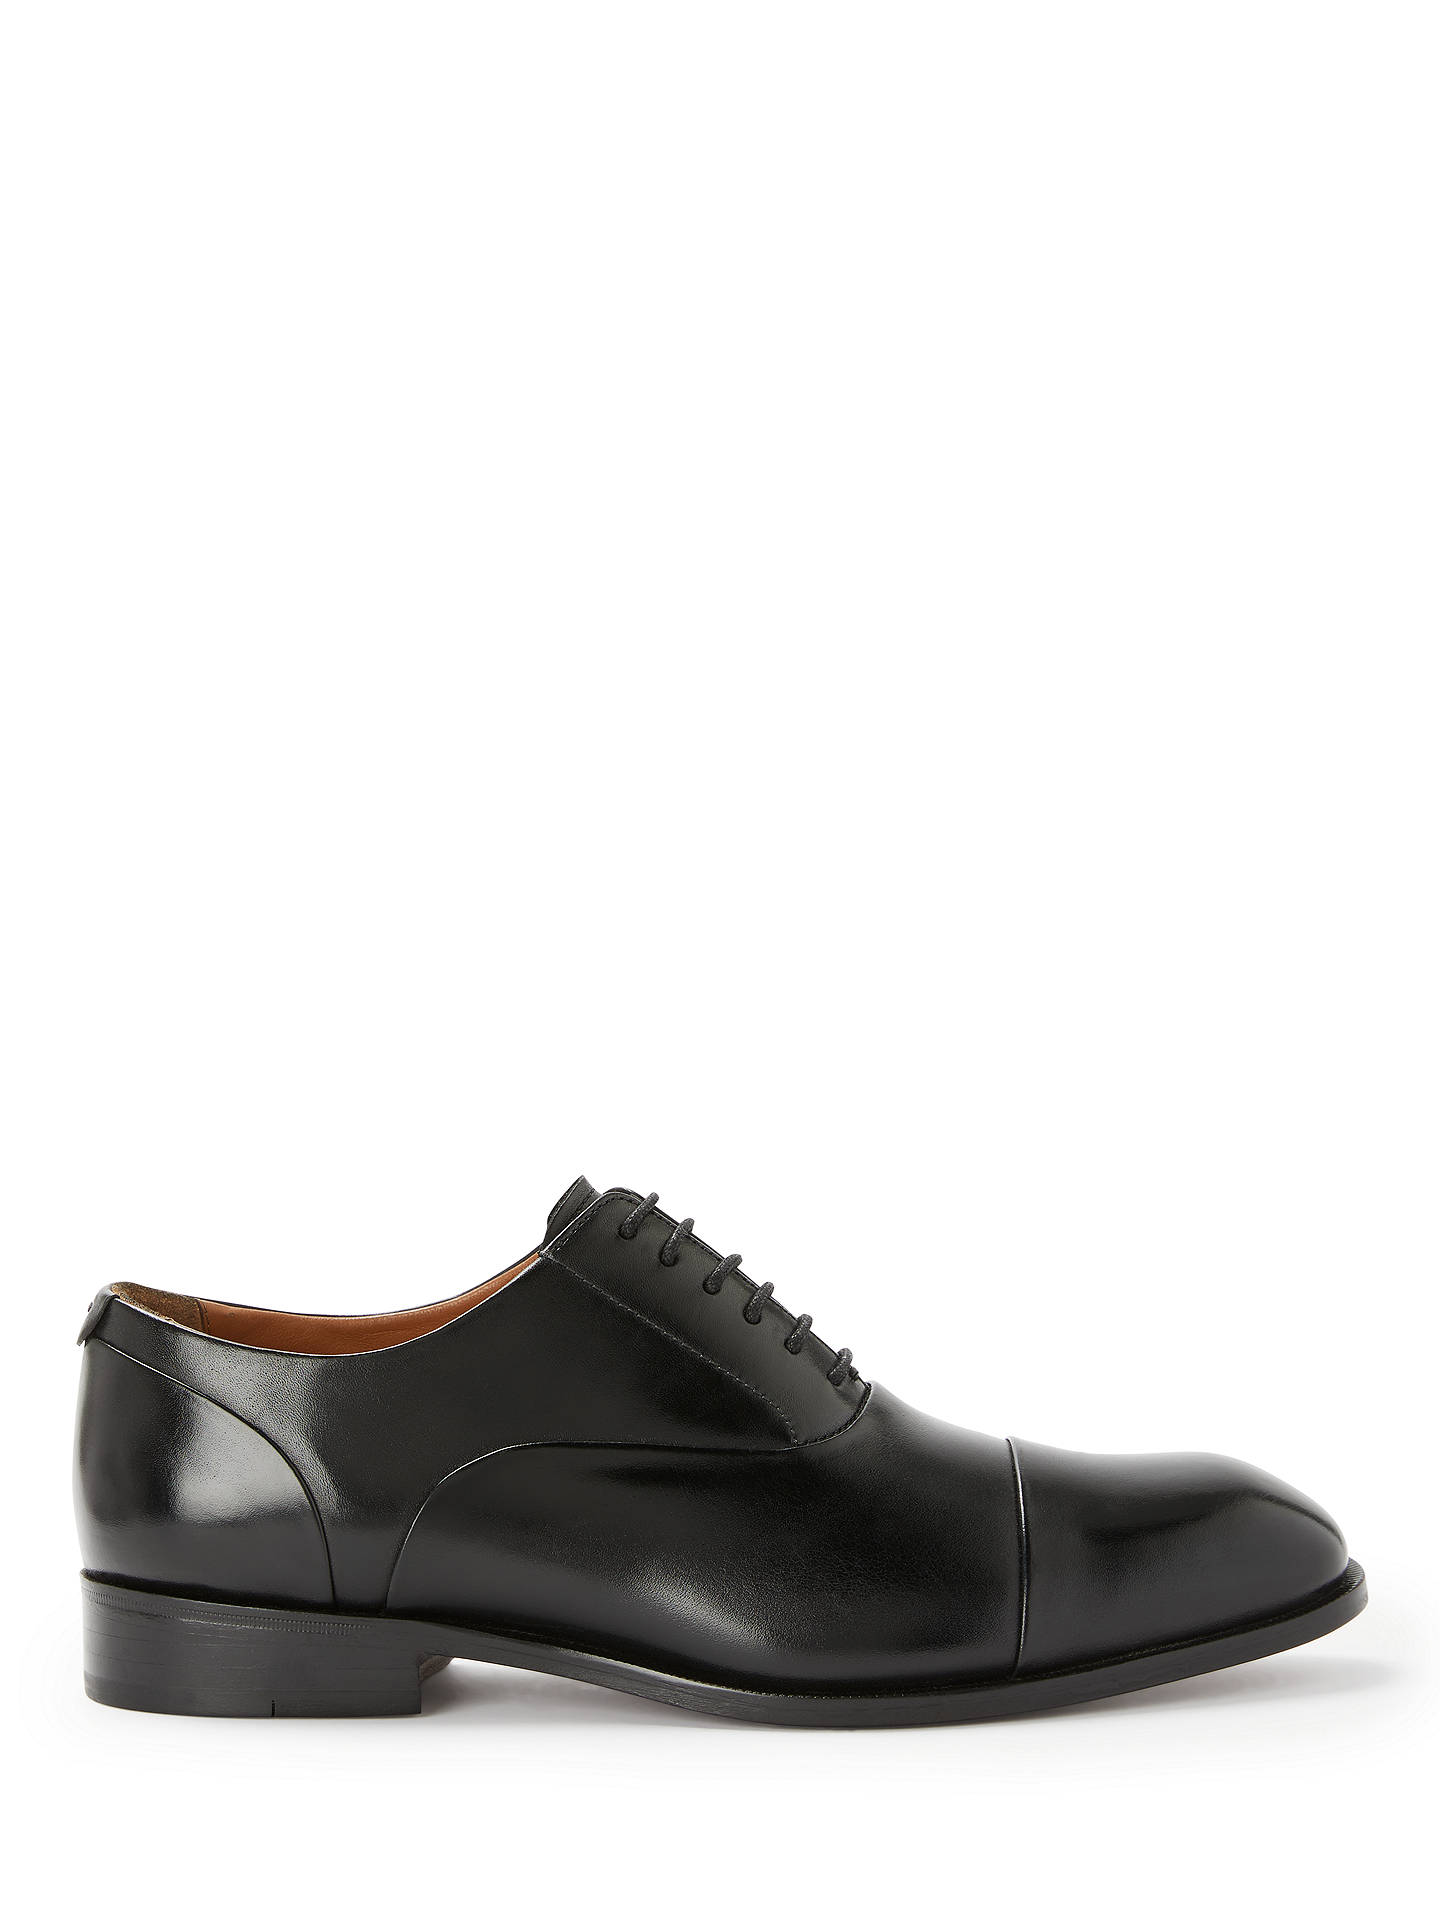 John Lewis   Partners Goodwin Oxford Leather Lace-Up Shoes at John ... f1cefcf7a9a5